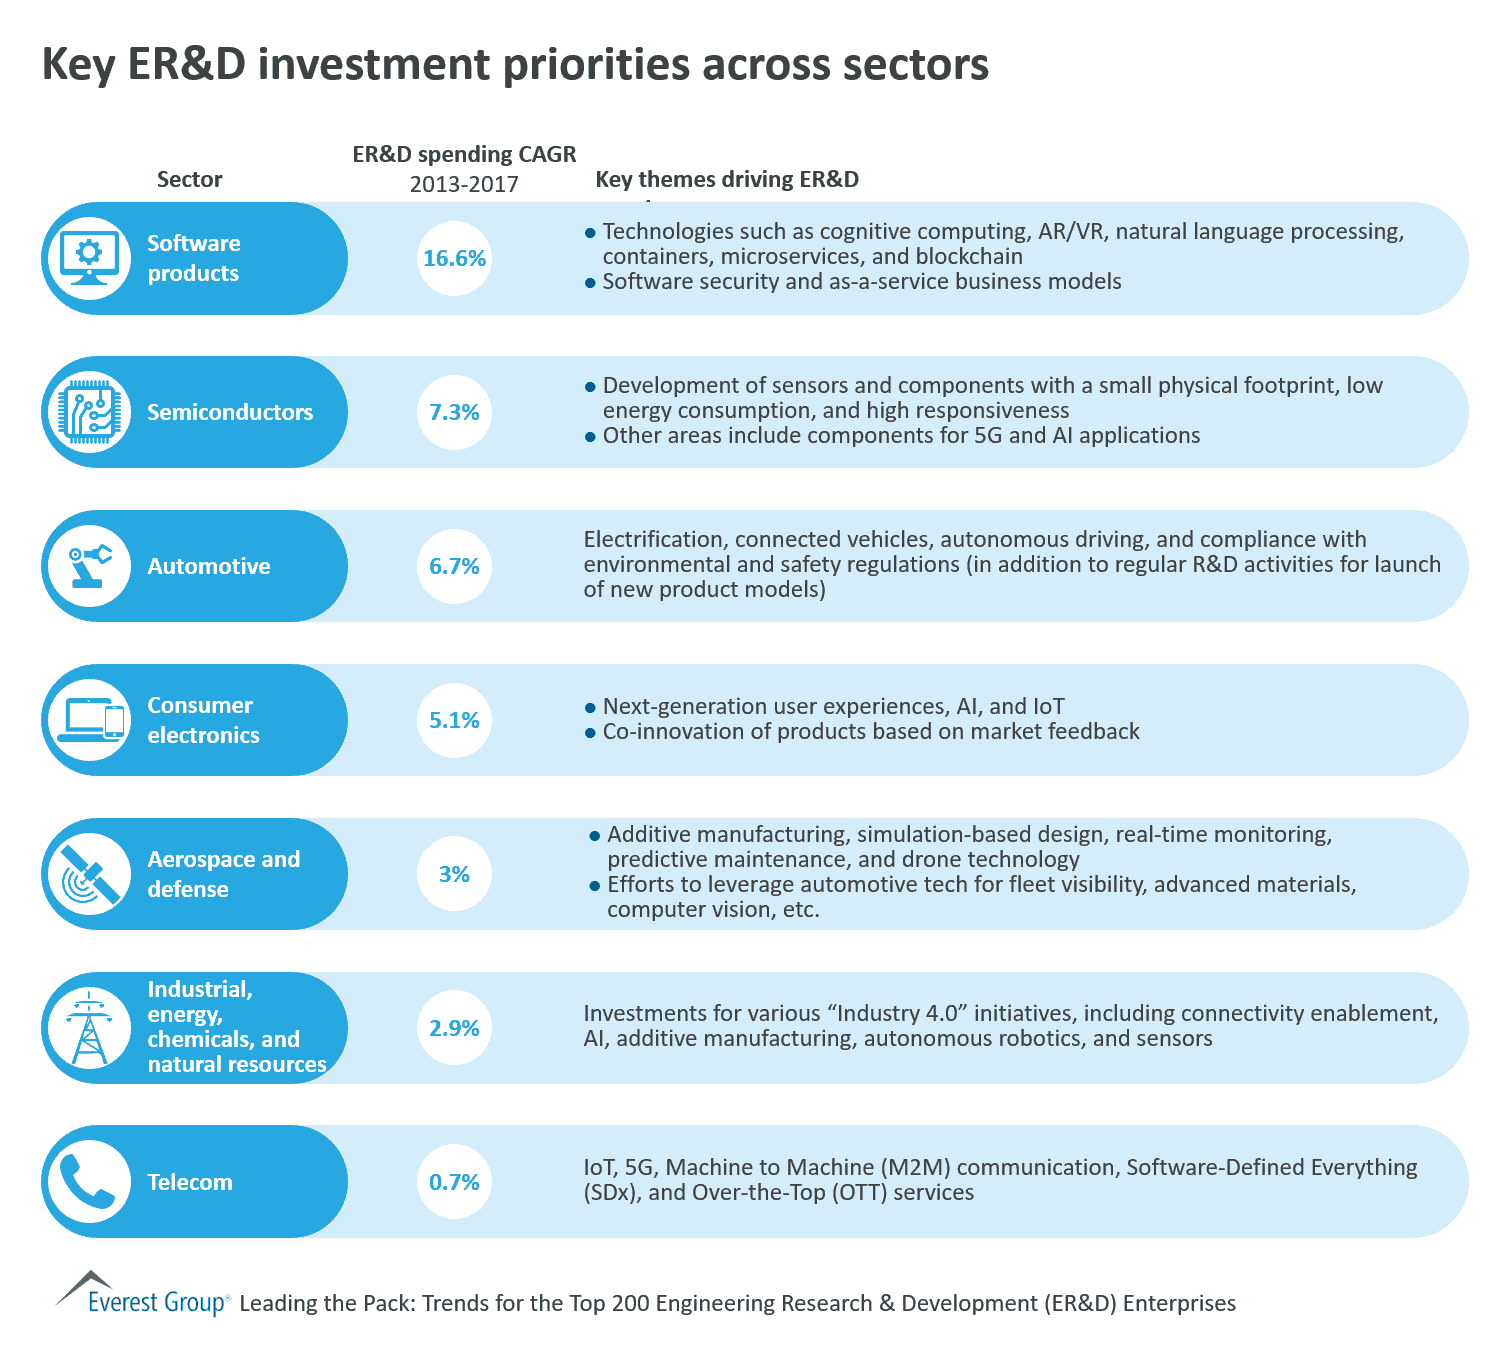 Key ER&D investment priorities across sectors